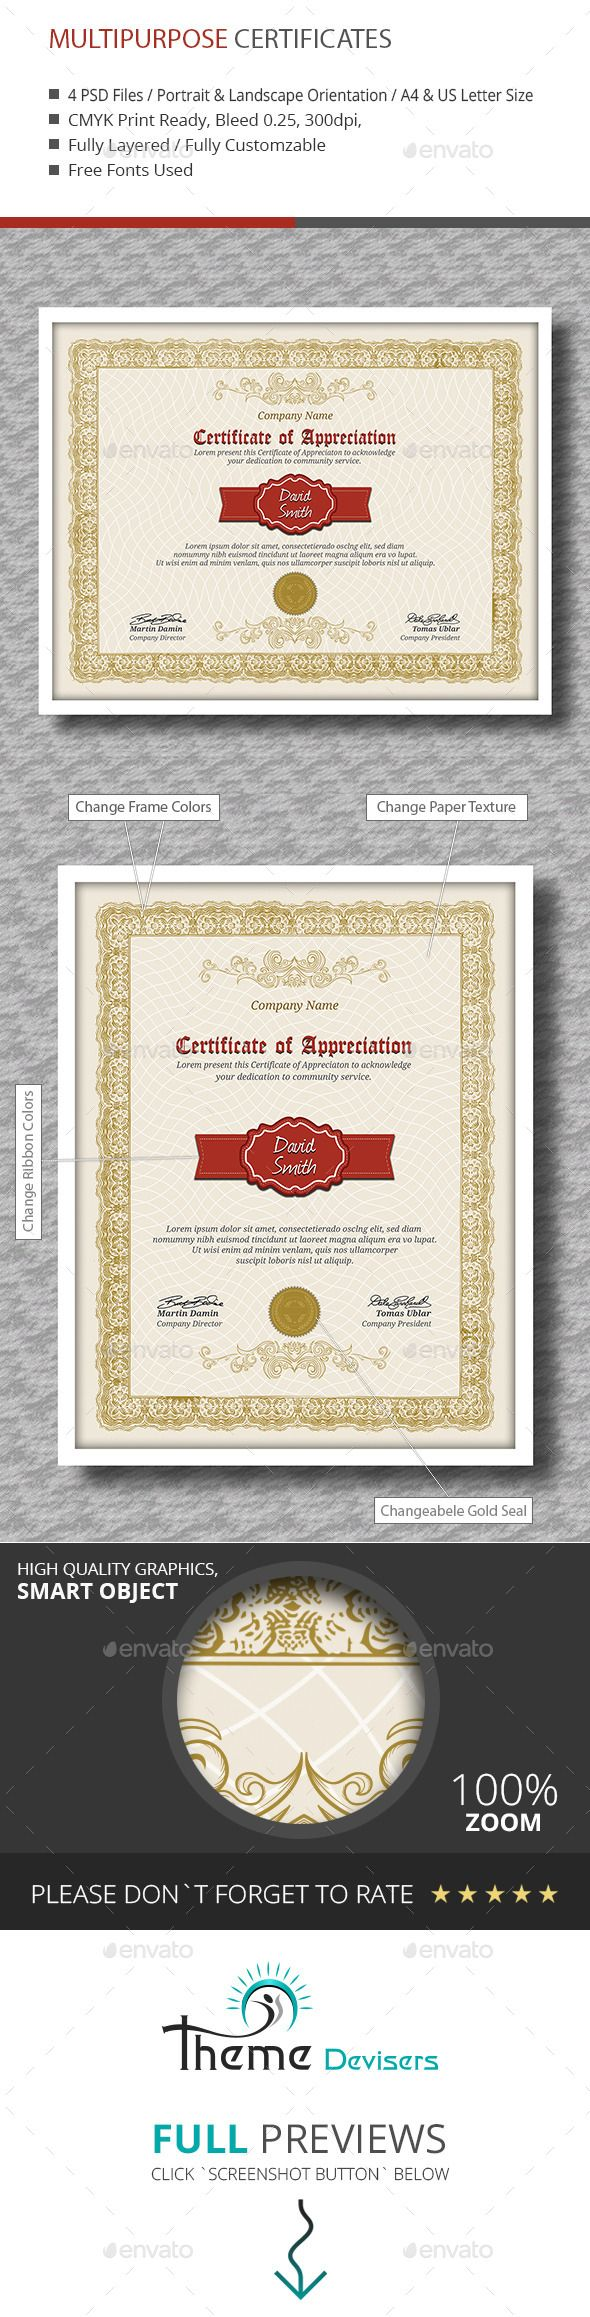 certificate psd download   Vaydile euforic co certificate psd download